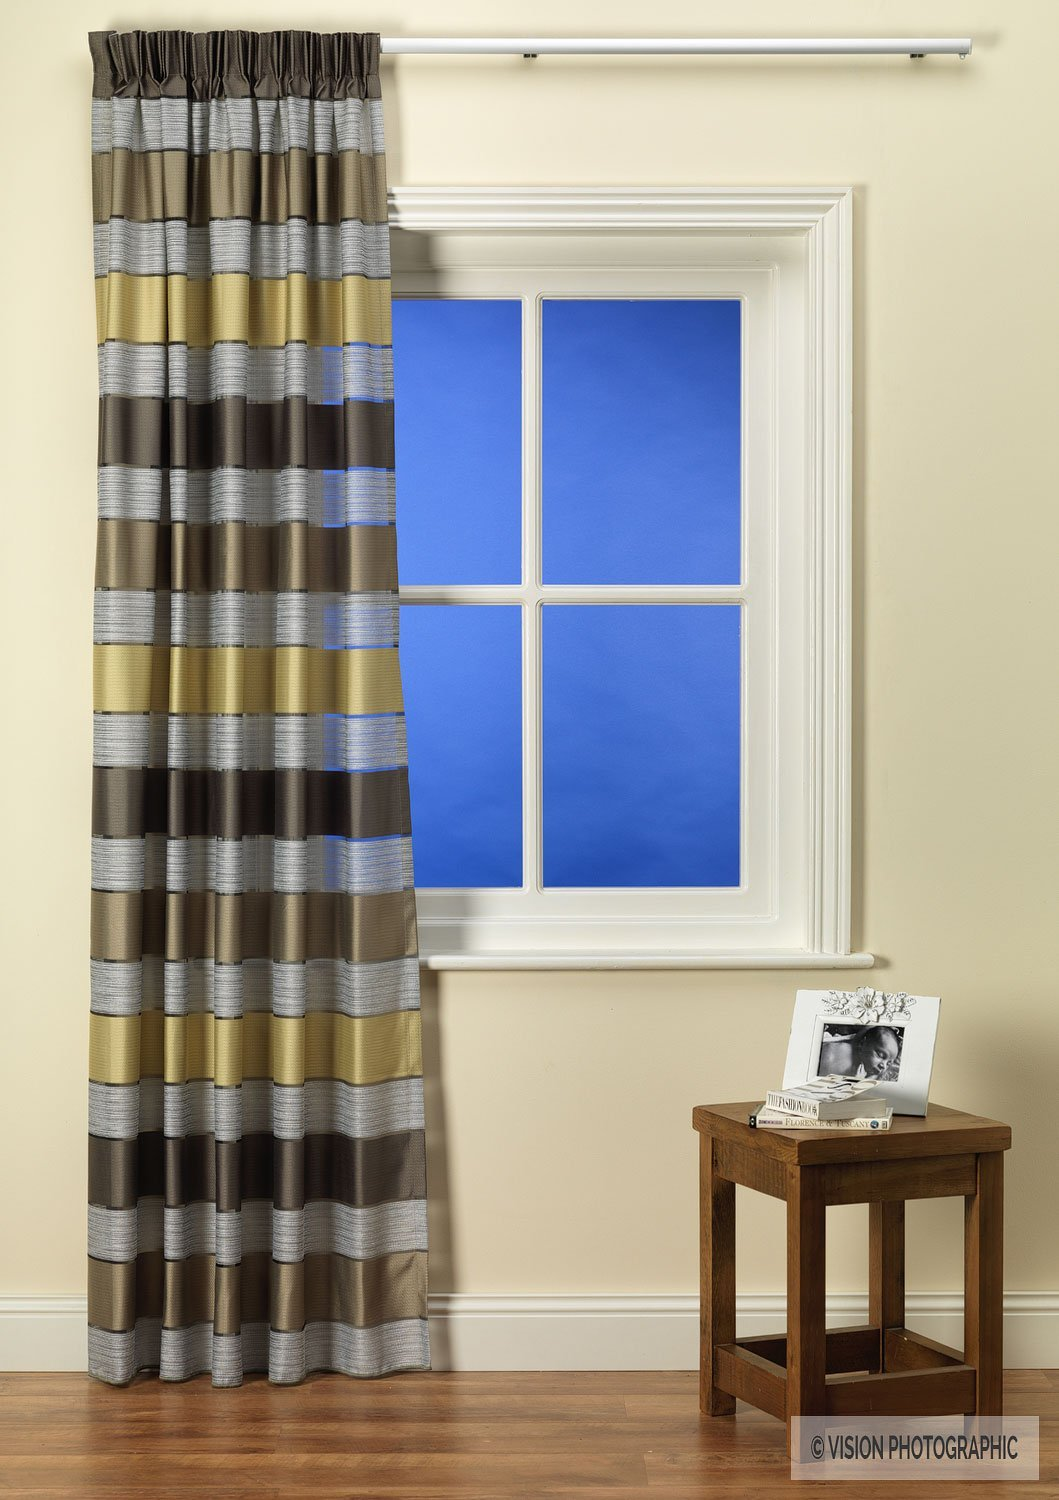 Curtain photography for netcuratinsdirect.co.uk